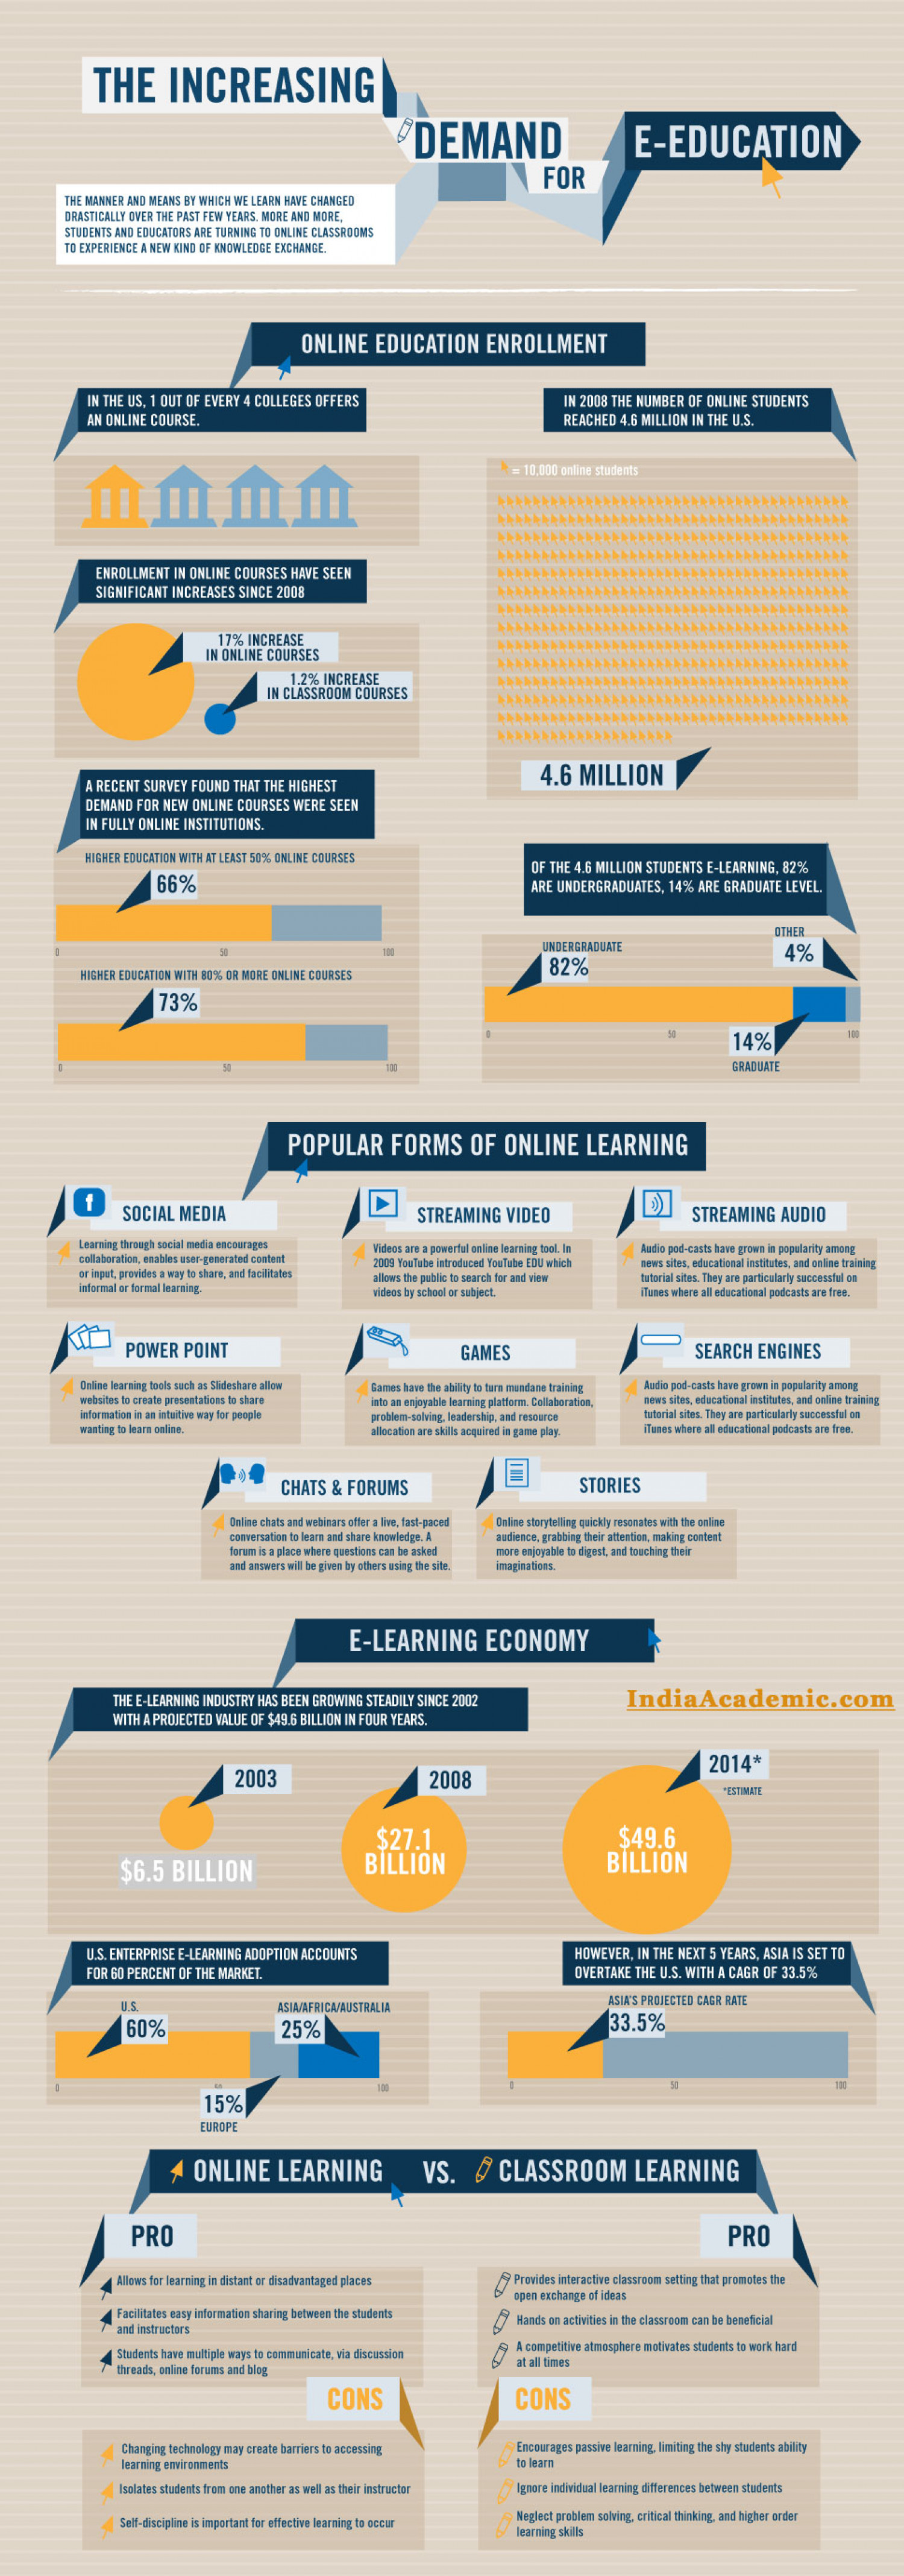 Increasing Demand of Online Education and E-Education Infographic